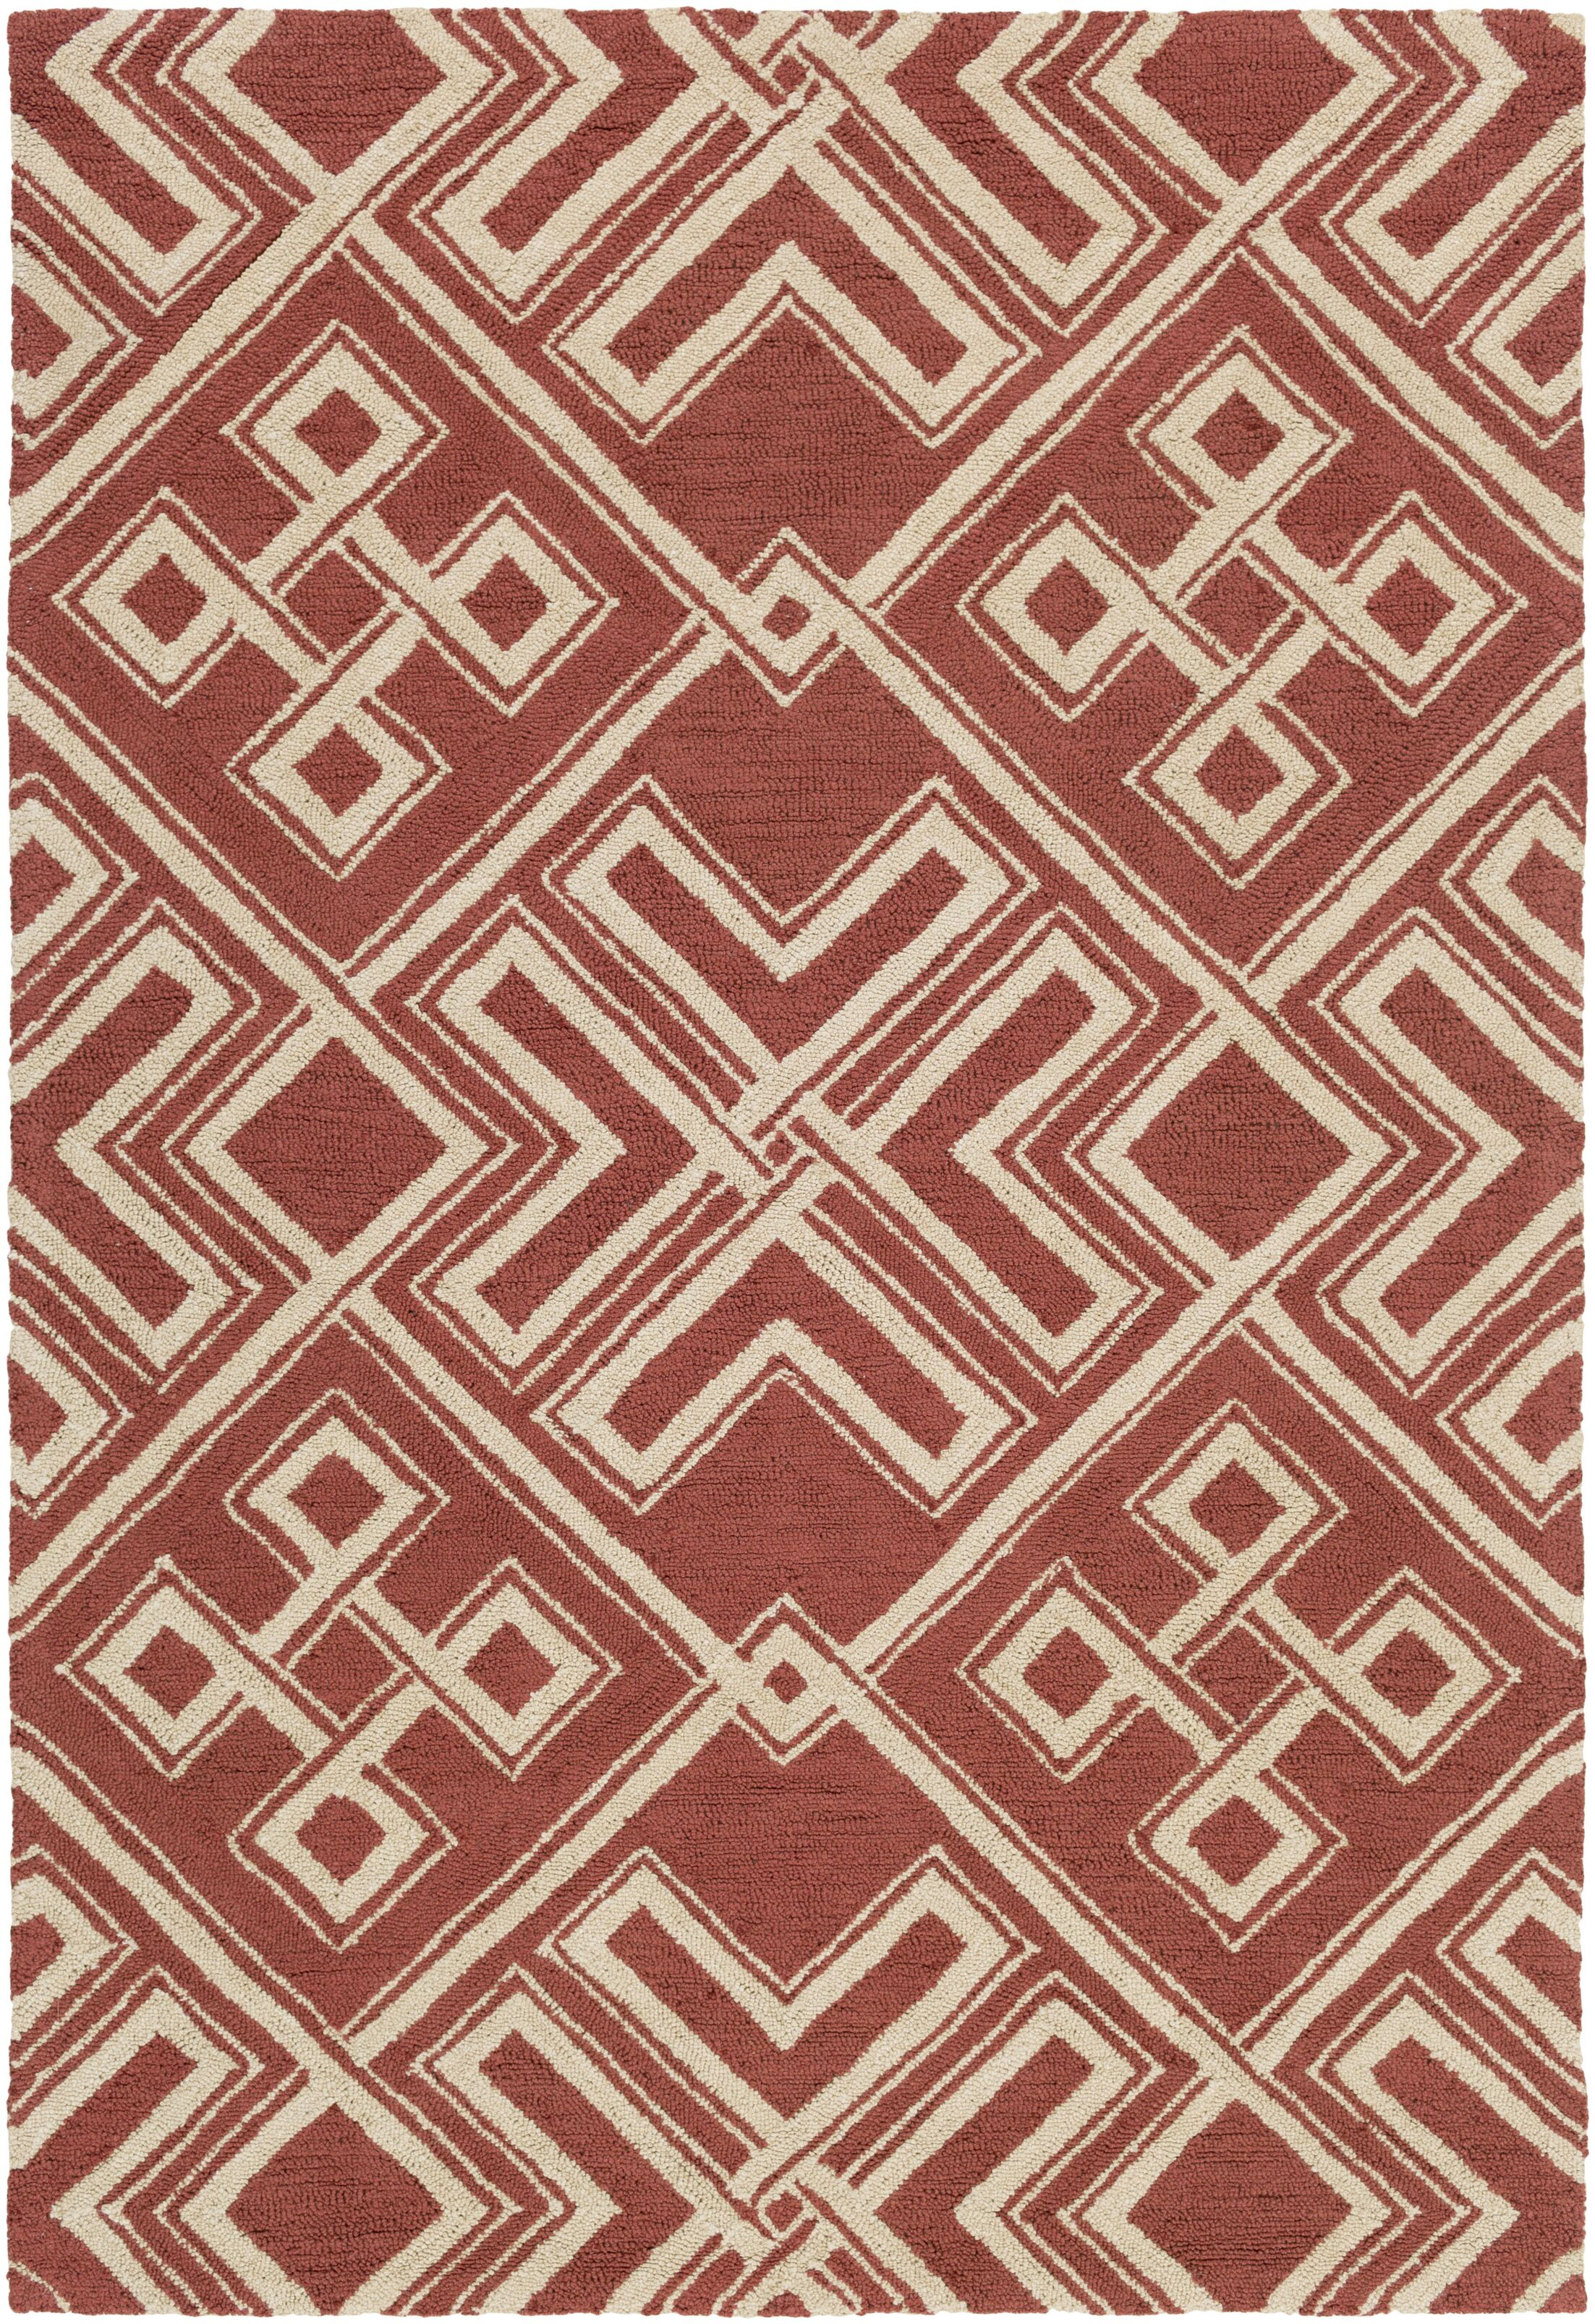 Joyal Hand-Tufted Red/Beige Area Rug Rug Size: Rectangle 5' x 7'6